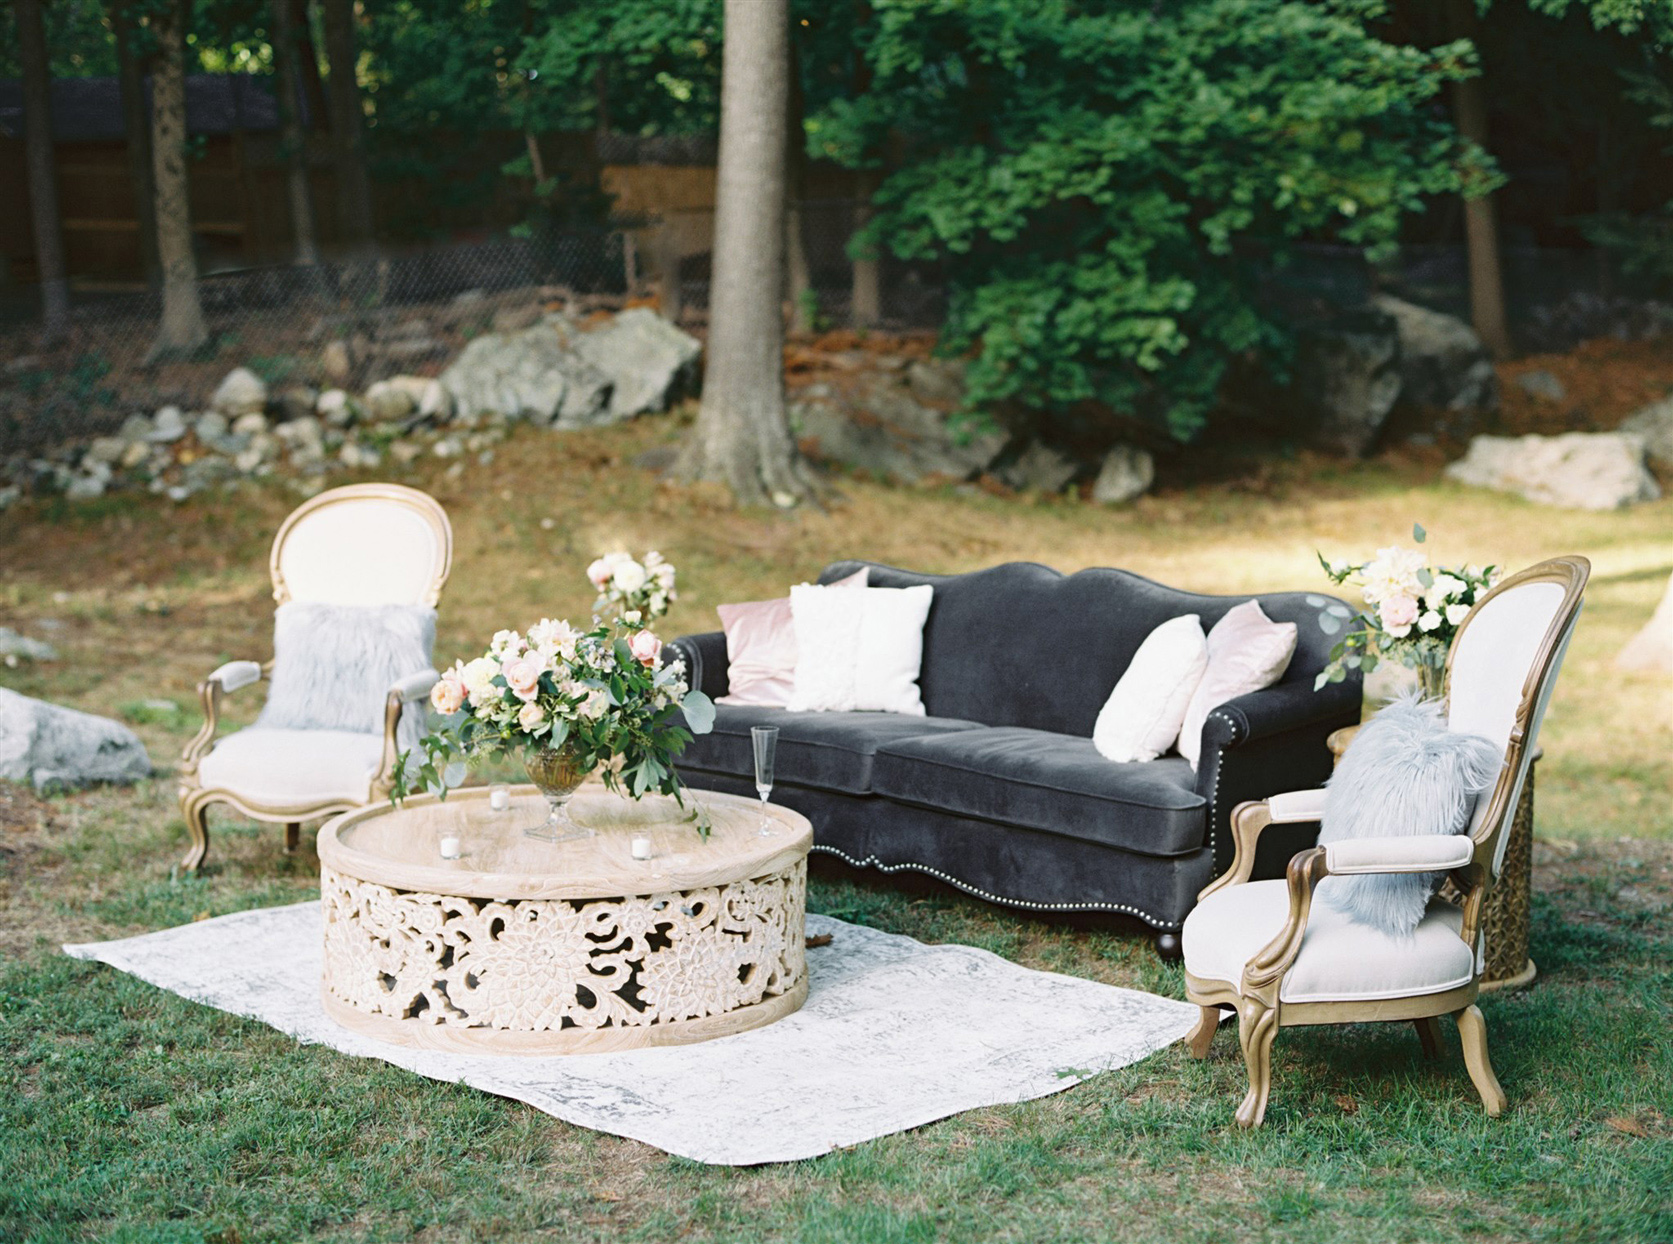 Couch and accent chairs in grass with coffee table